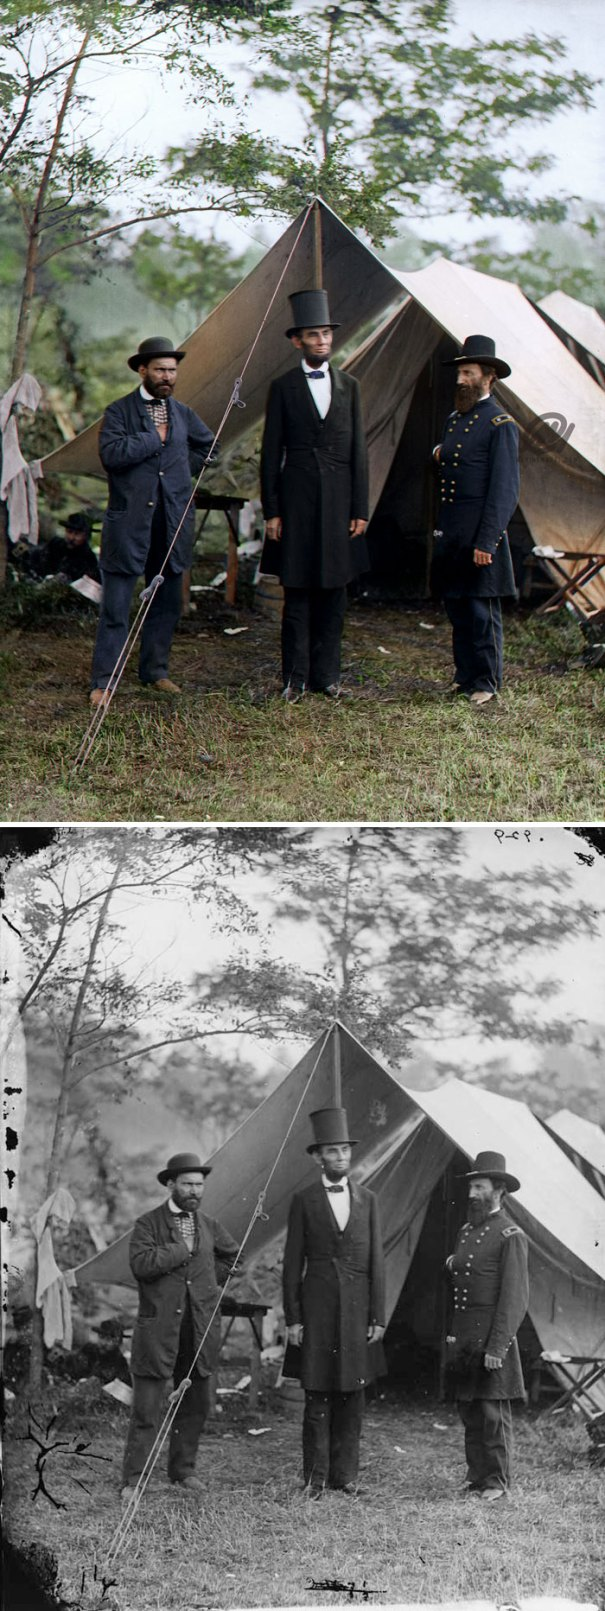 5b6d3b722f54b-colorized-historic-photos-marina-amaral-27-5b6acebc3427d__700 This Artist Colorizes Old Black & White Photos, And They Will Change The Way People Imagine History Photography Random